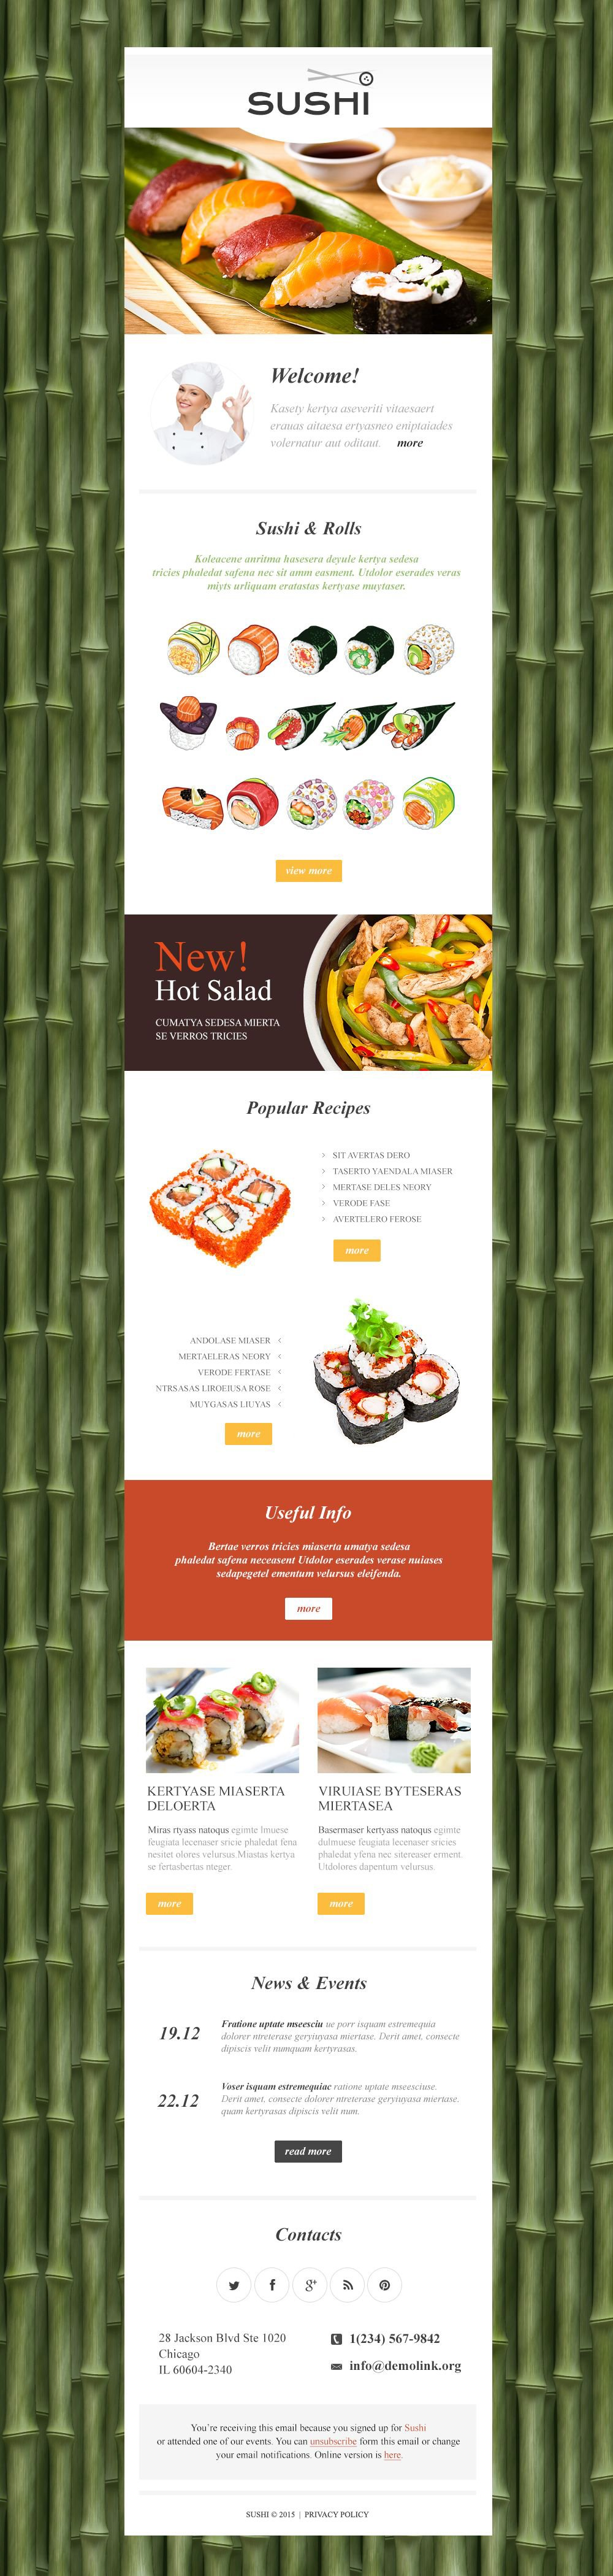 The Sushi Bar Newsletter Template Design 53102, one of the best Newsletter templates of its kind (cafe and restaurant, most popular), also known as sushi bar Newsletter template, teppanyaki Newsletter template, asia Newsletter template, asian Newsletter template, asians Newsletter template, menu Newsletter template, deserts Newsletter template, drinks Newsletter template, dishes restaurant Newsletter template, cafe Newsletter template, food Newsletter template, meal Newsletter template, cuisine Newsletter template, waiters Newsletter template, taste Newsletter template, tasty Newsletter template, flavor Newsletter template, reservation Newsletter template, recipe Newsletter template, testimonials Newsletter template, offers Newsletter template, kitchen Newsletter template, cookbook Newsletter template, gifts Newsletter template, bonuses Newsletter template, discount Newsletter template, patrons Newsletter template, reservation Newsletter template, delivery Newsletter template, cancellation Newsletter template, shopsti and related with sushi bar, teppanyaki, asia, asian, asians, menu, deserts, drinks, dishes restaurant, cafe, food, meal, cuisine, waiters, taste, tasty, flavor, reservation, recipe, testimonials, offers, kitchen, cookbook, gifts, bonuses, discount, patrons, reservation, delivery, cancellation, shopsti, etc.